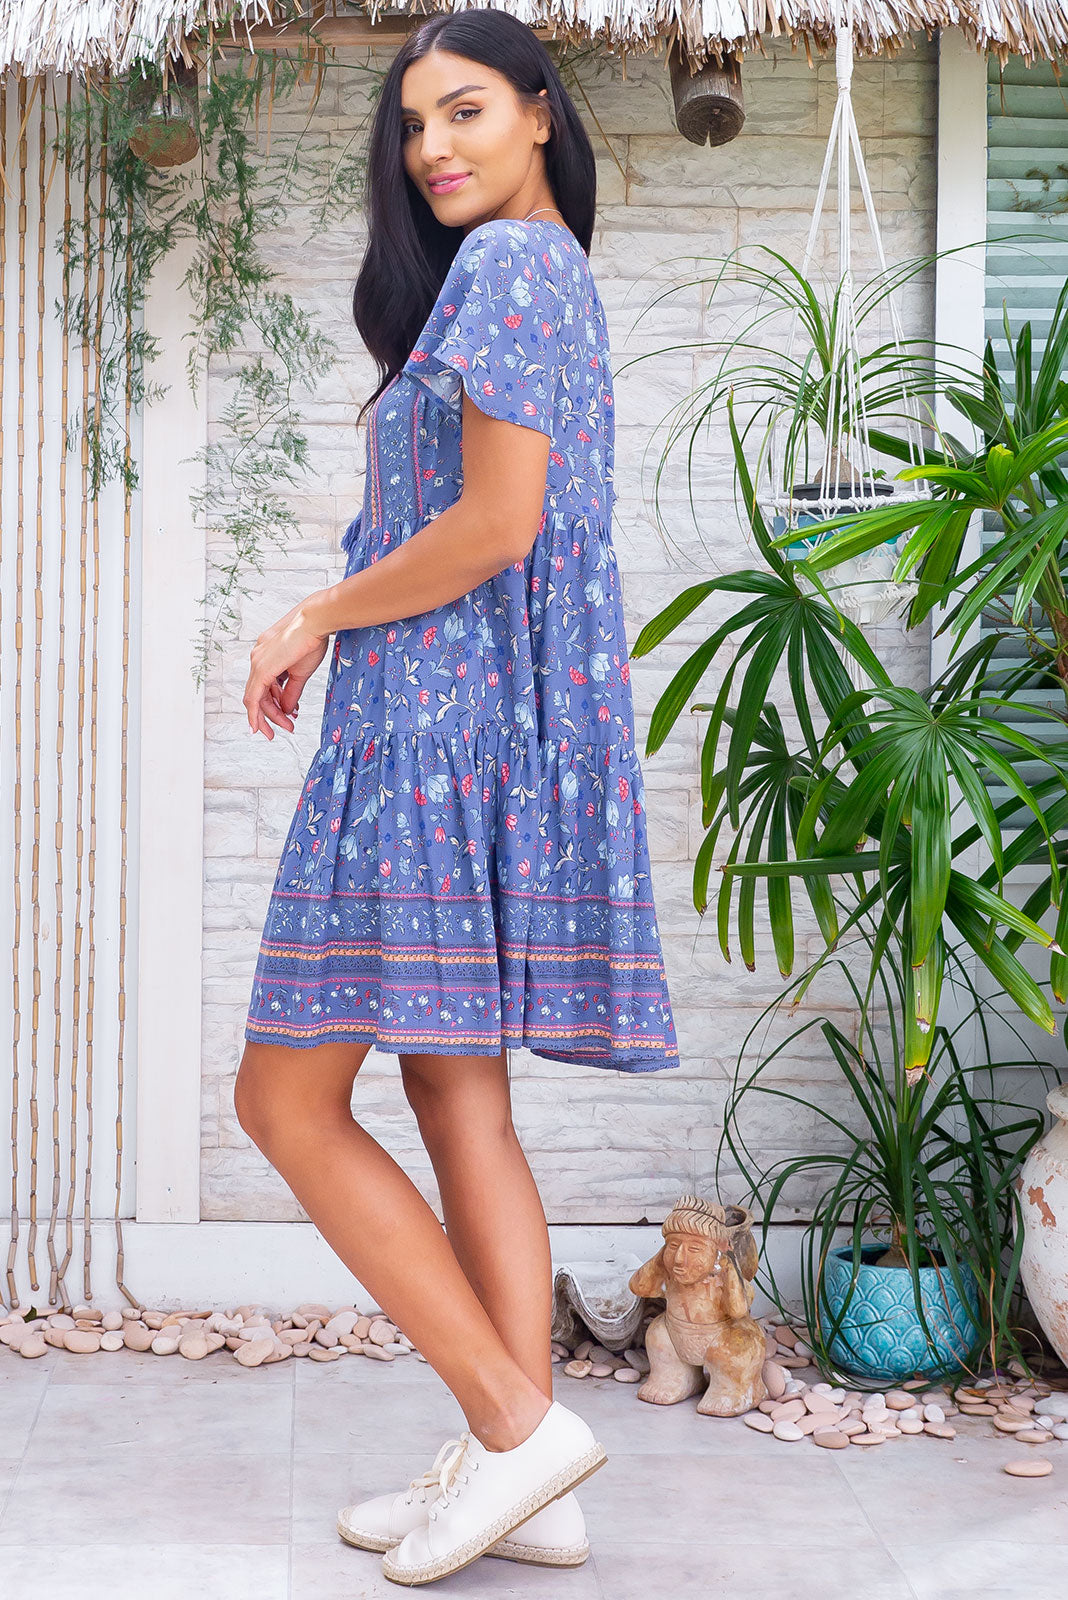 The Viva Highway Blues Dress features adjustable neckline with tassel ended ties, elasticated back of neckline, short, flutter sleeves, side pockets, tiered, full skirt and 100 % rayon in smoky blue base with pretty florals and border feature on chest and hem.